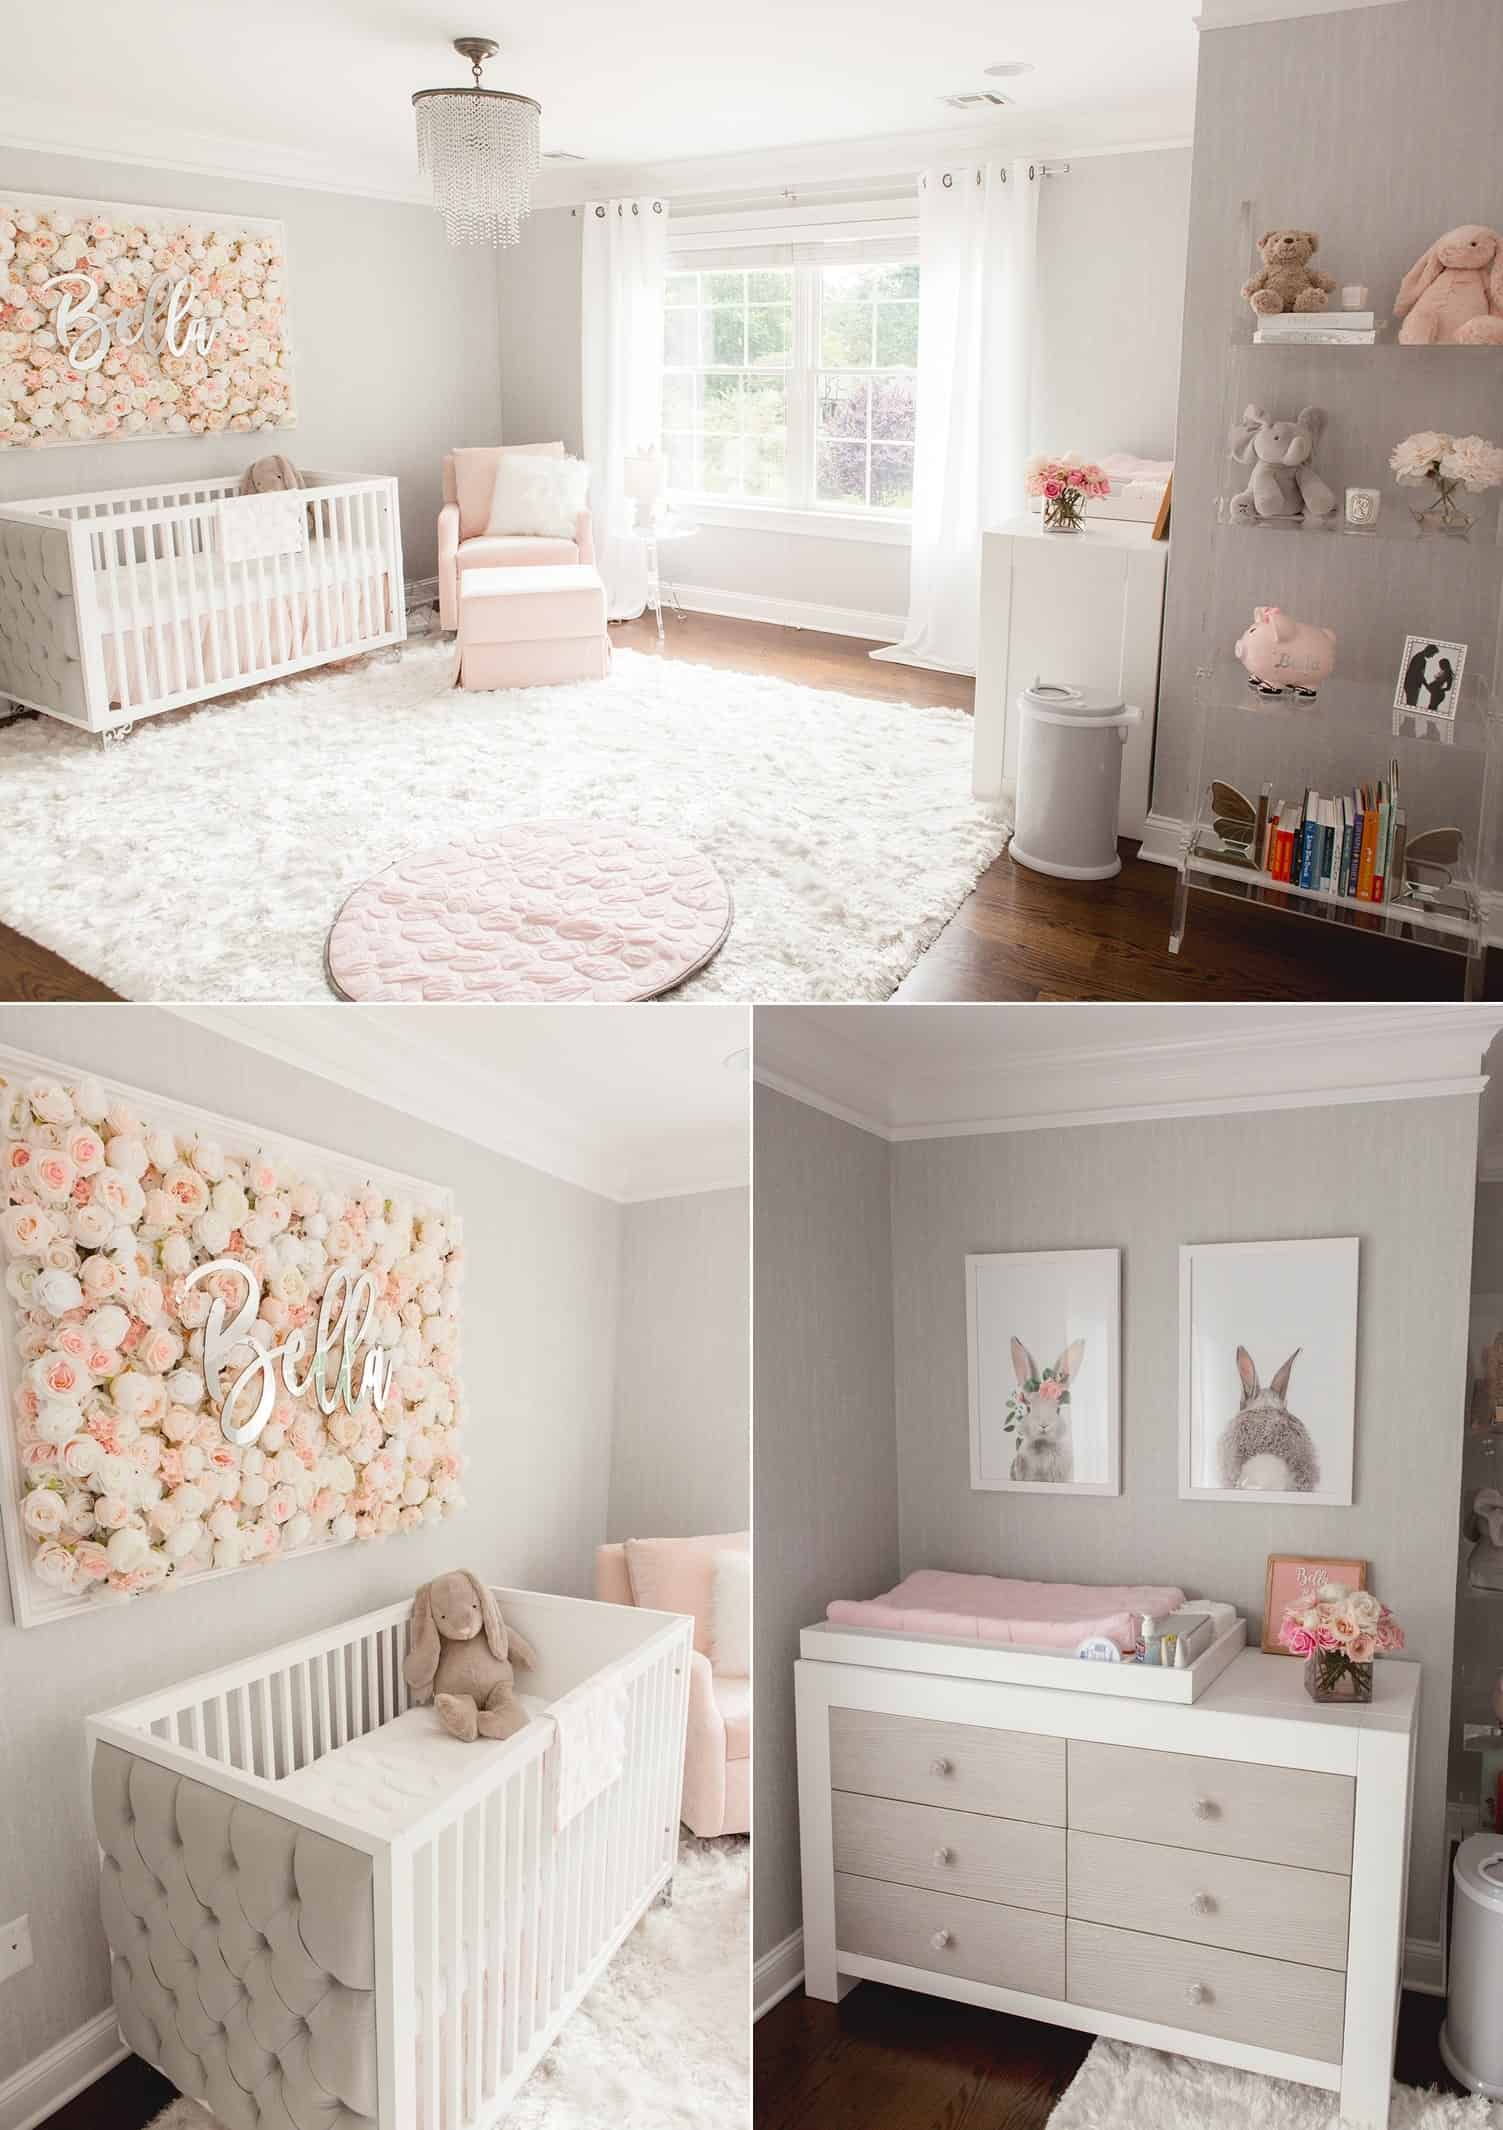 Baby Girl Bedroom Ideas - Remodel Or Move on Girls Room Decor  id=54627